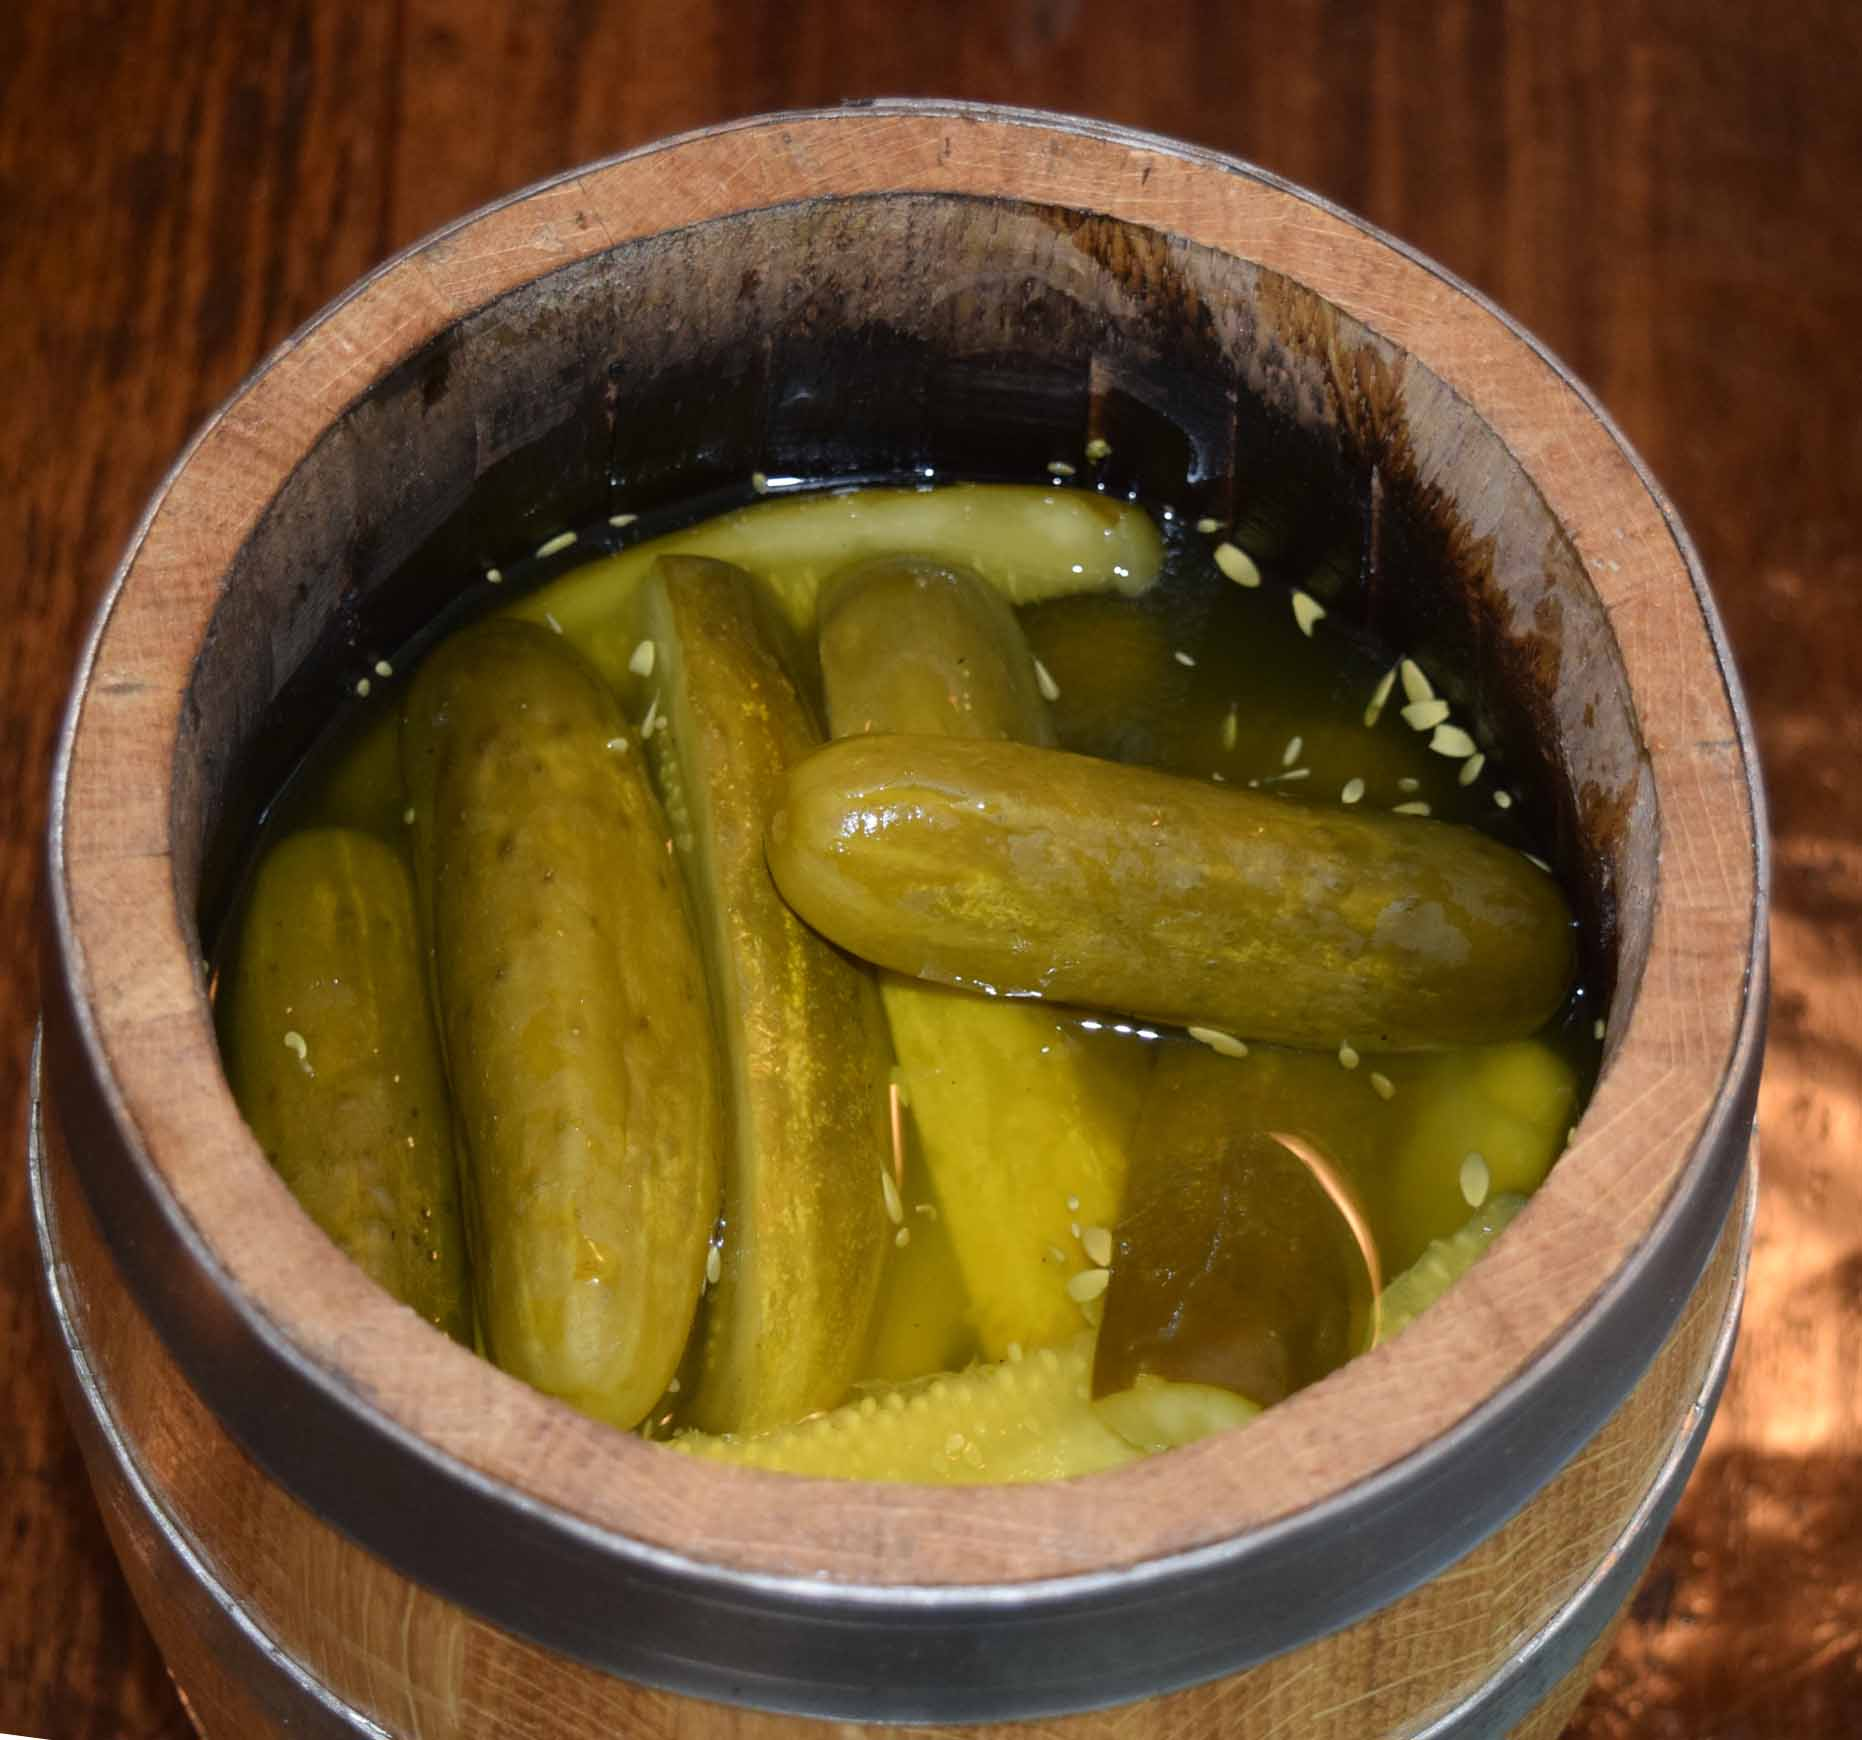 The pickling process is a magical thing!